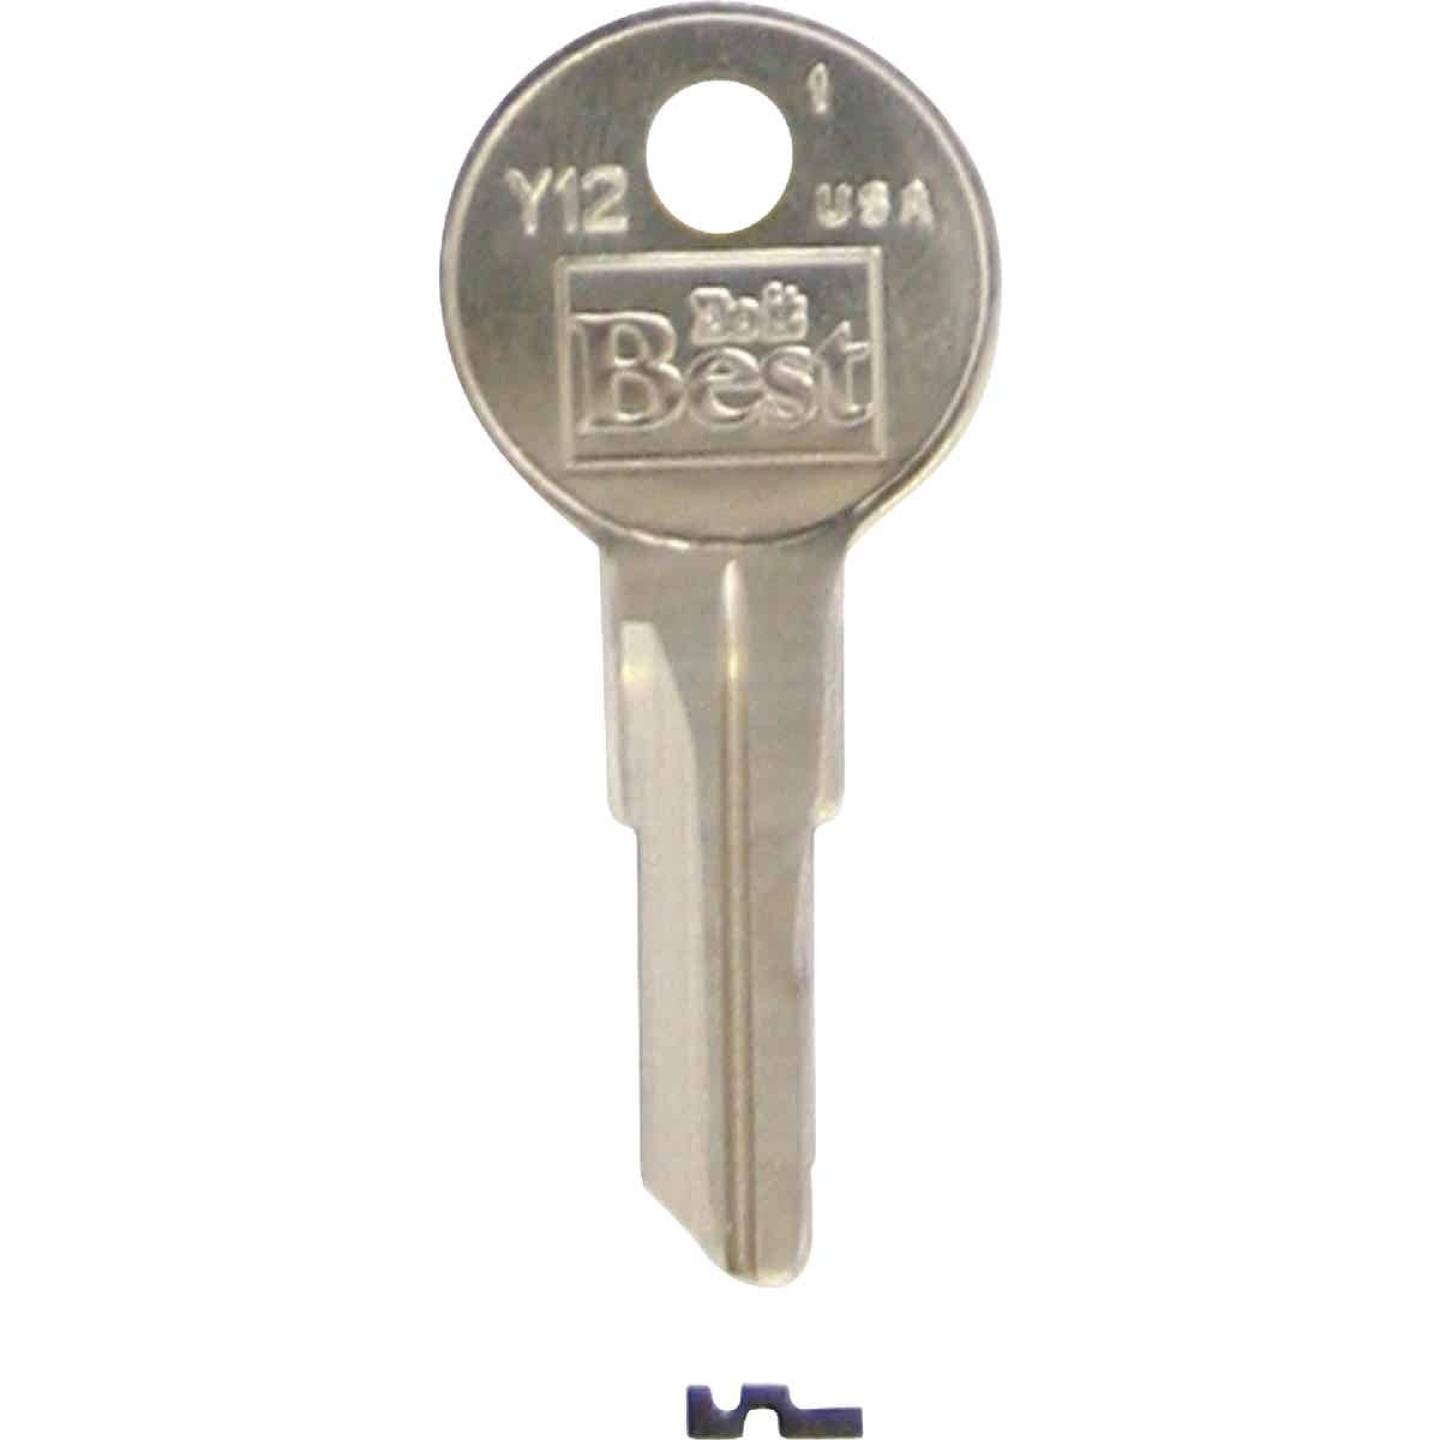 ILCO Yale Nickel Plated House Key, Y12 (10-Pack) Image 1